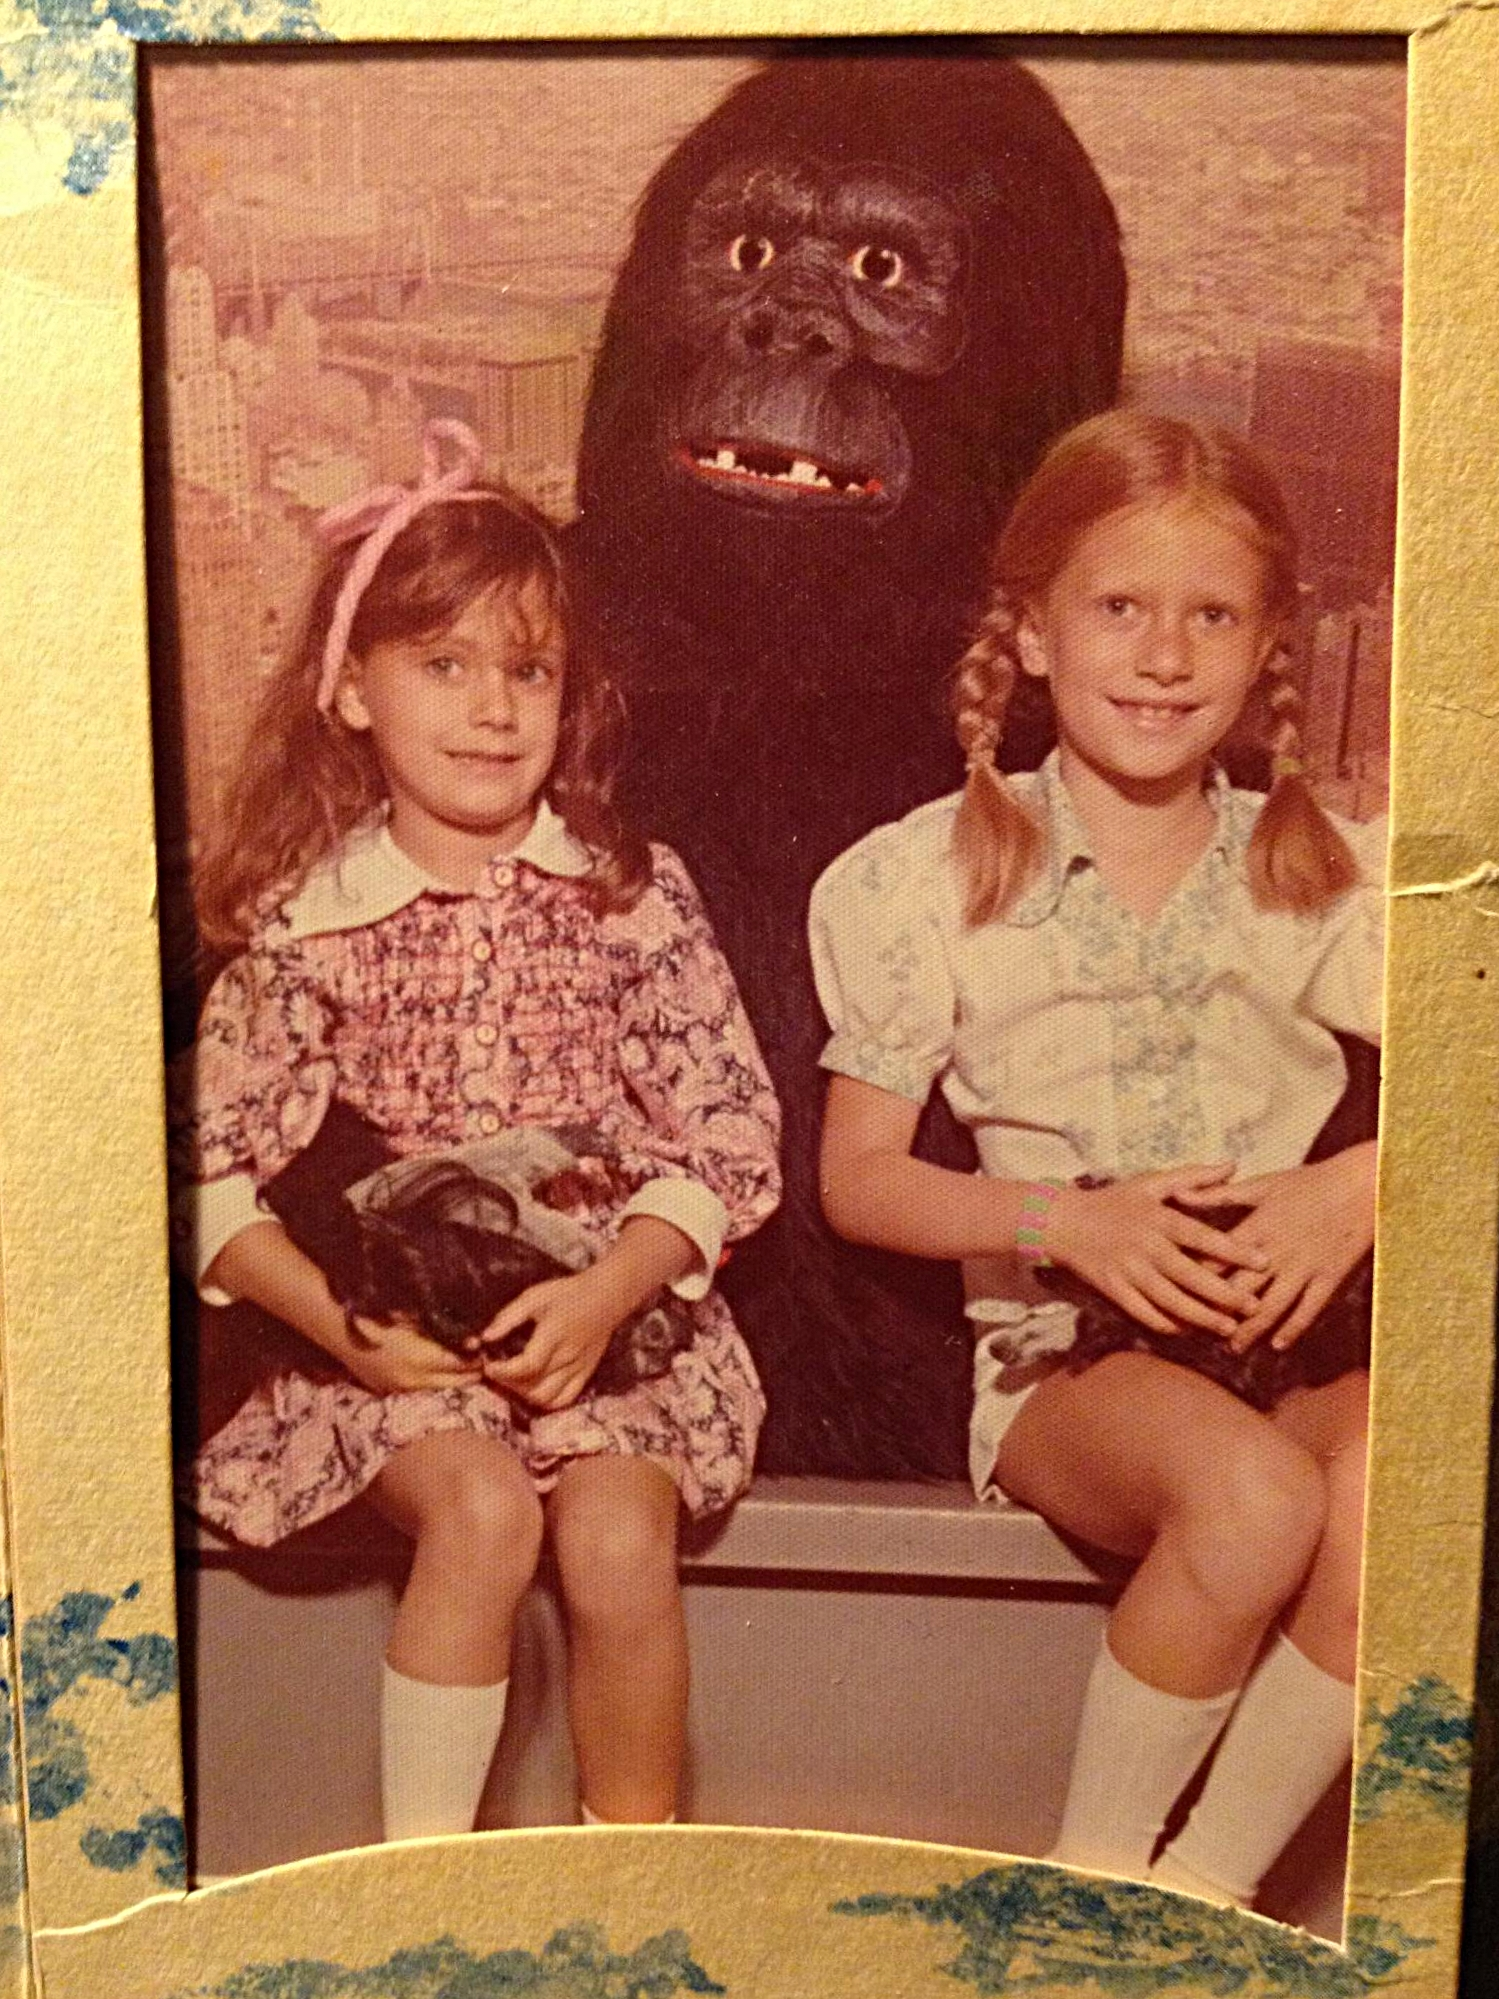 My sister (left) and I with the one and only King Kong at the Empire State Building.